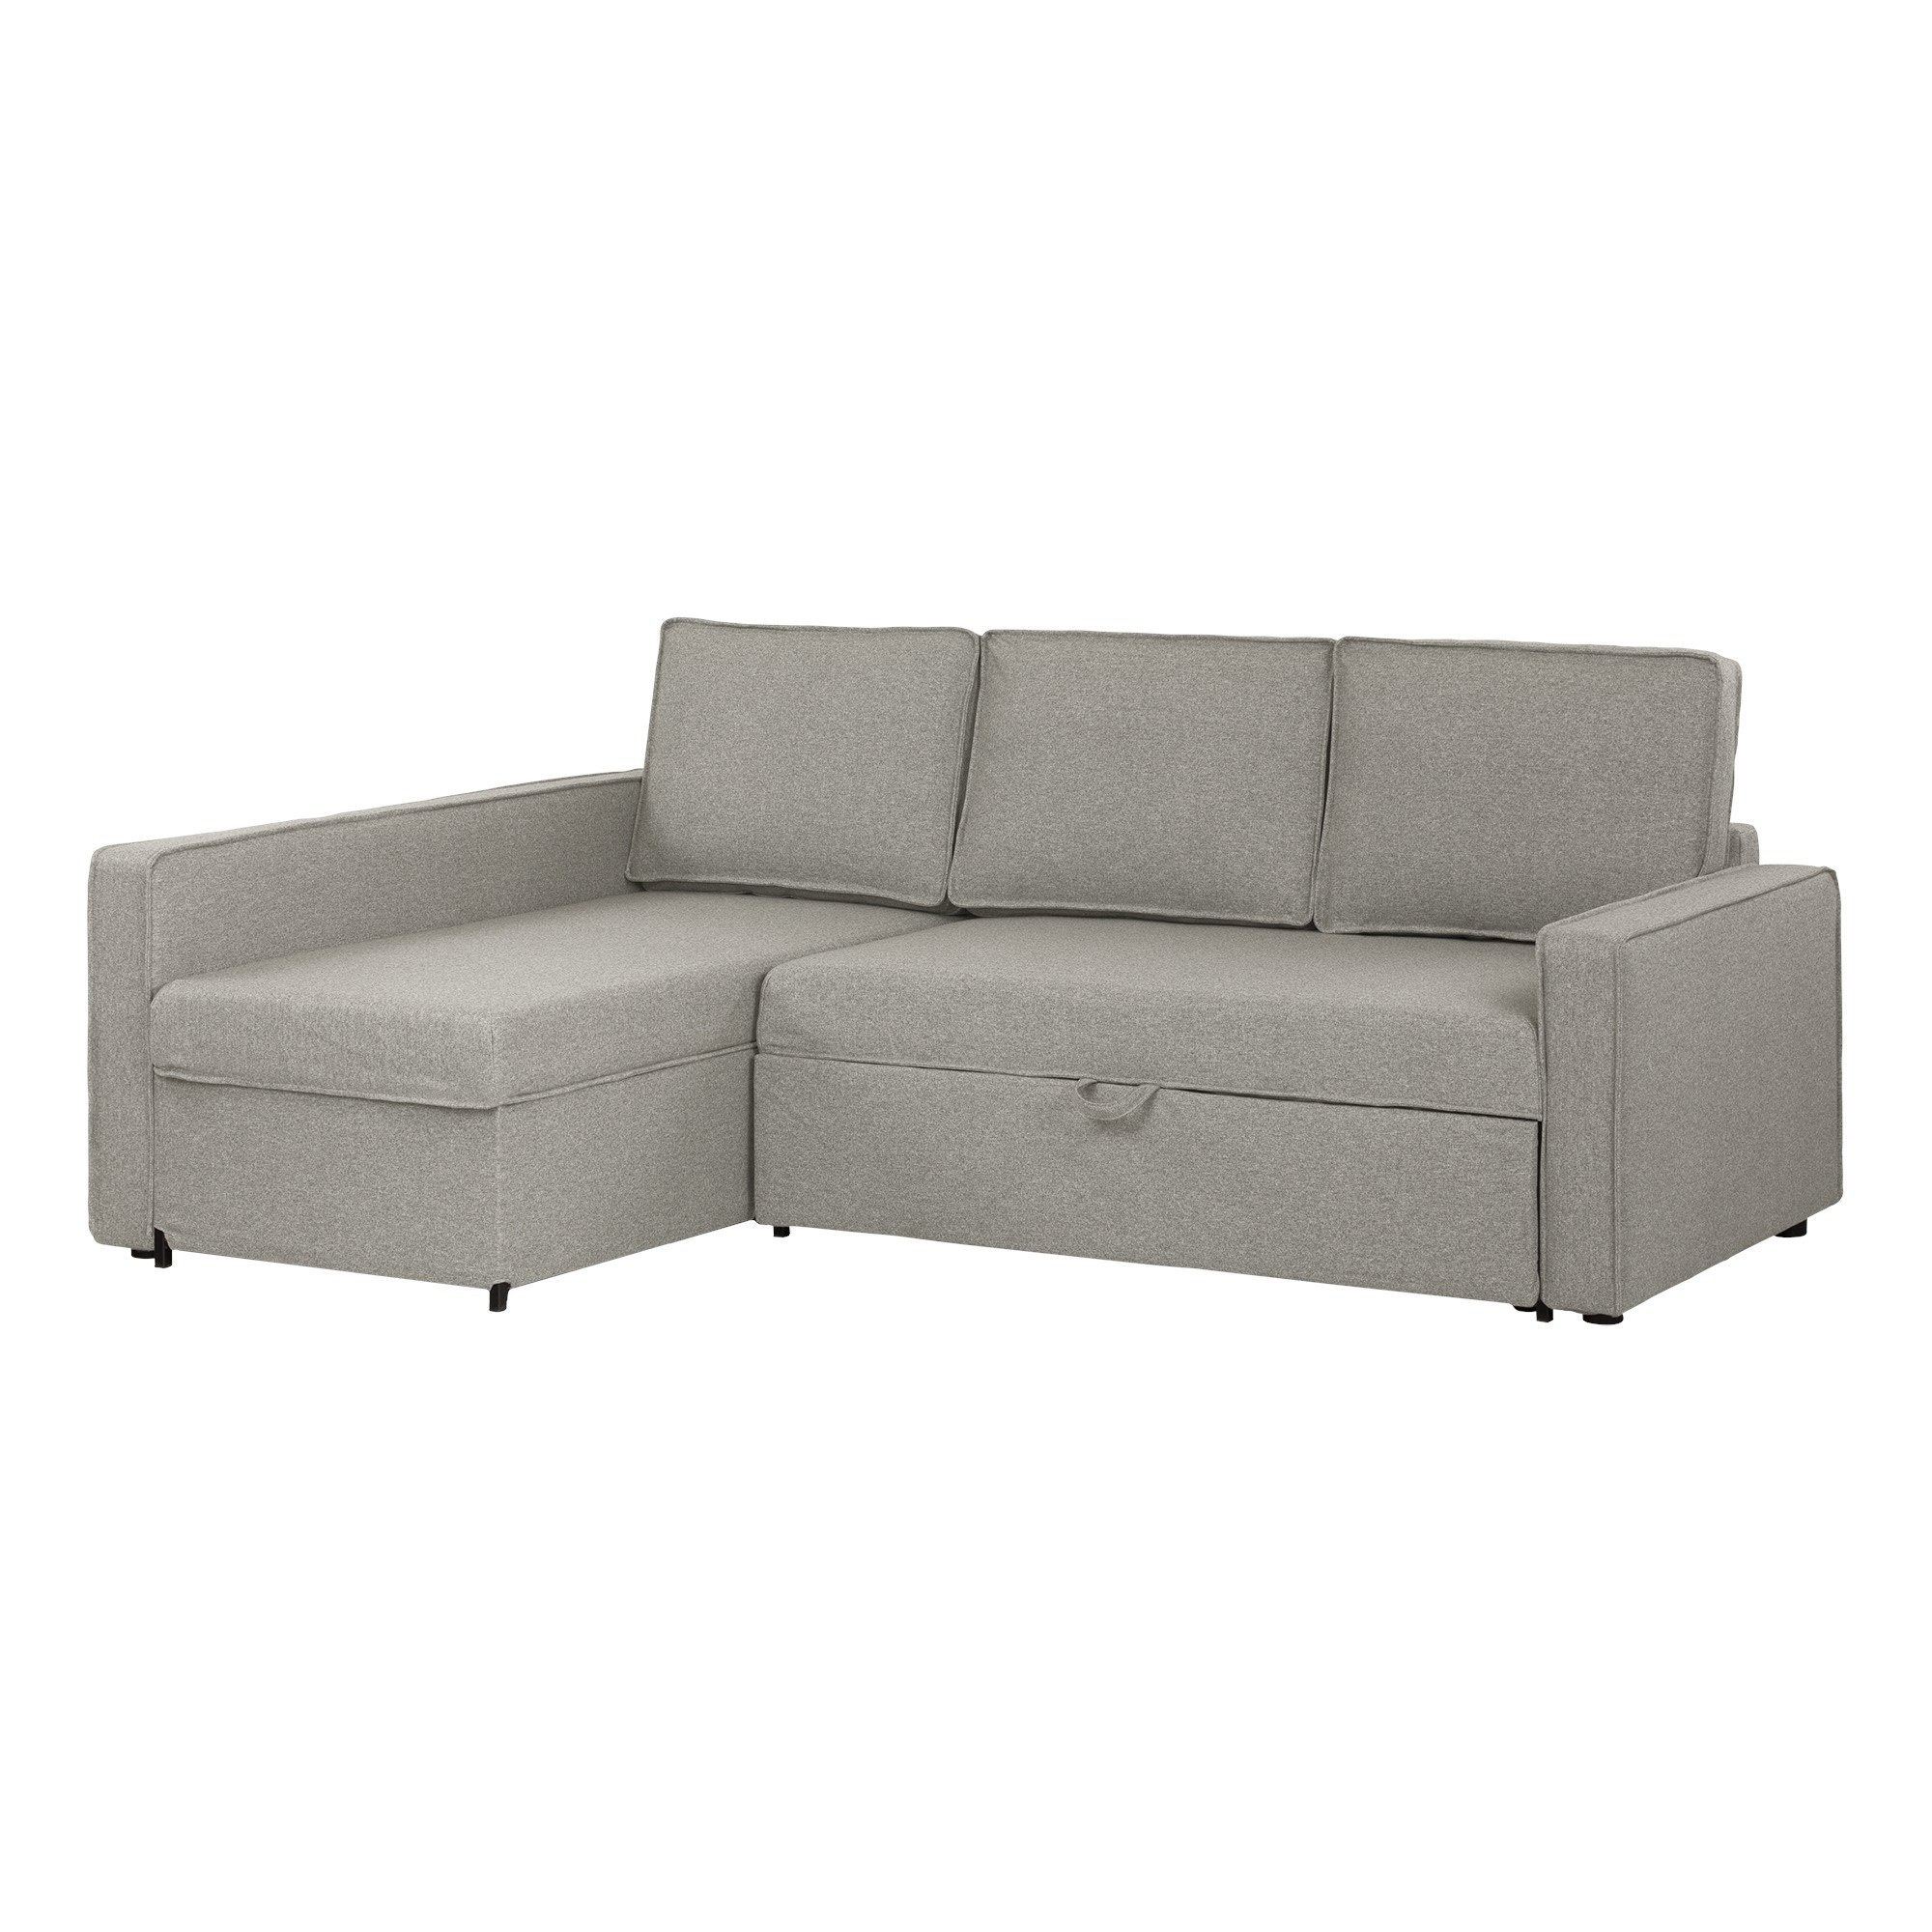 Shop South Shore Live-It Cozy Sectional Sofa-Bed With Storage - Free with regard to Jobs Oat 2 Piece Sectionals With Left Facing Chaise (Image 27 of 30)